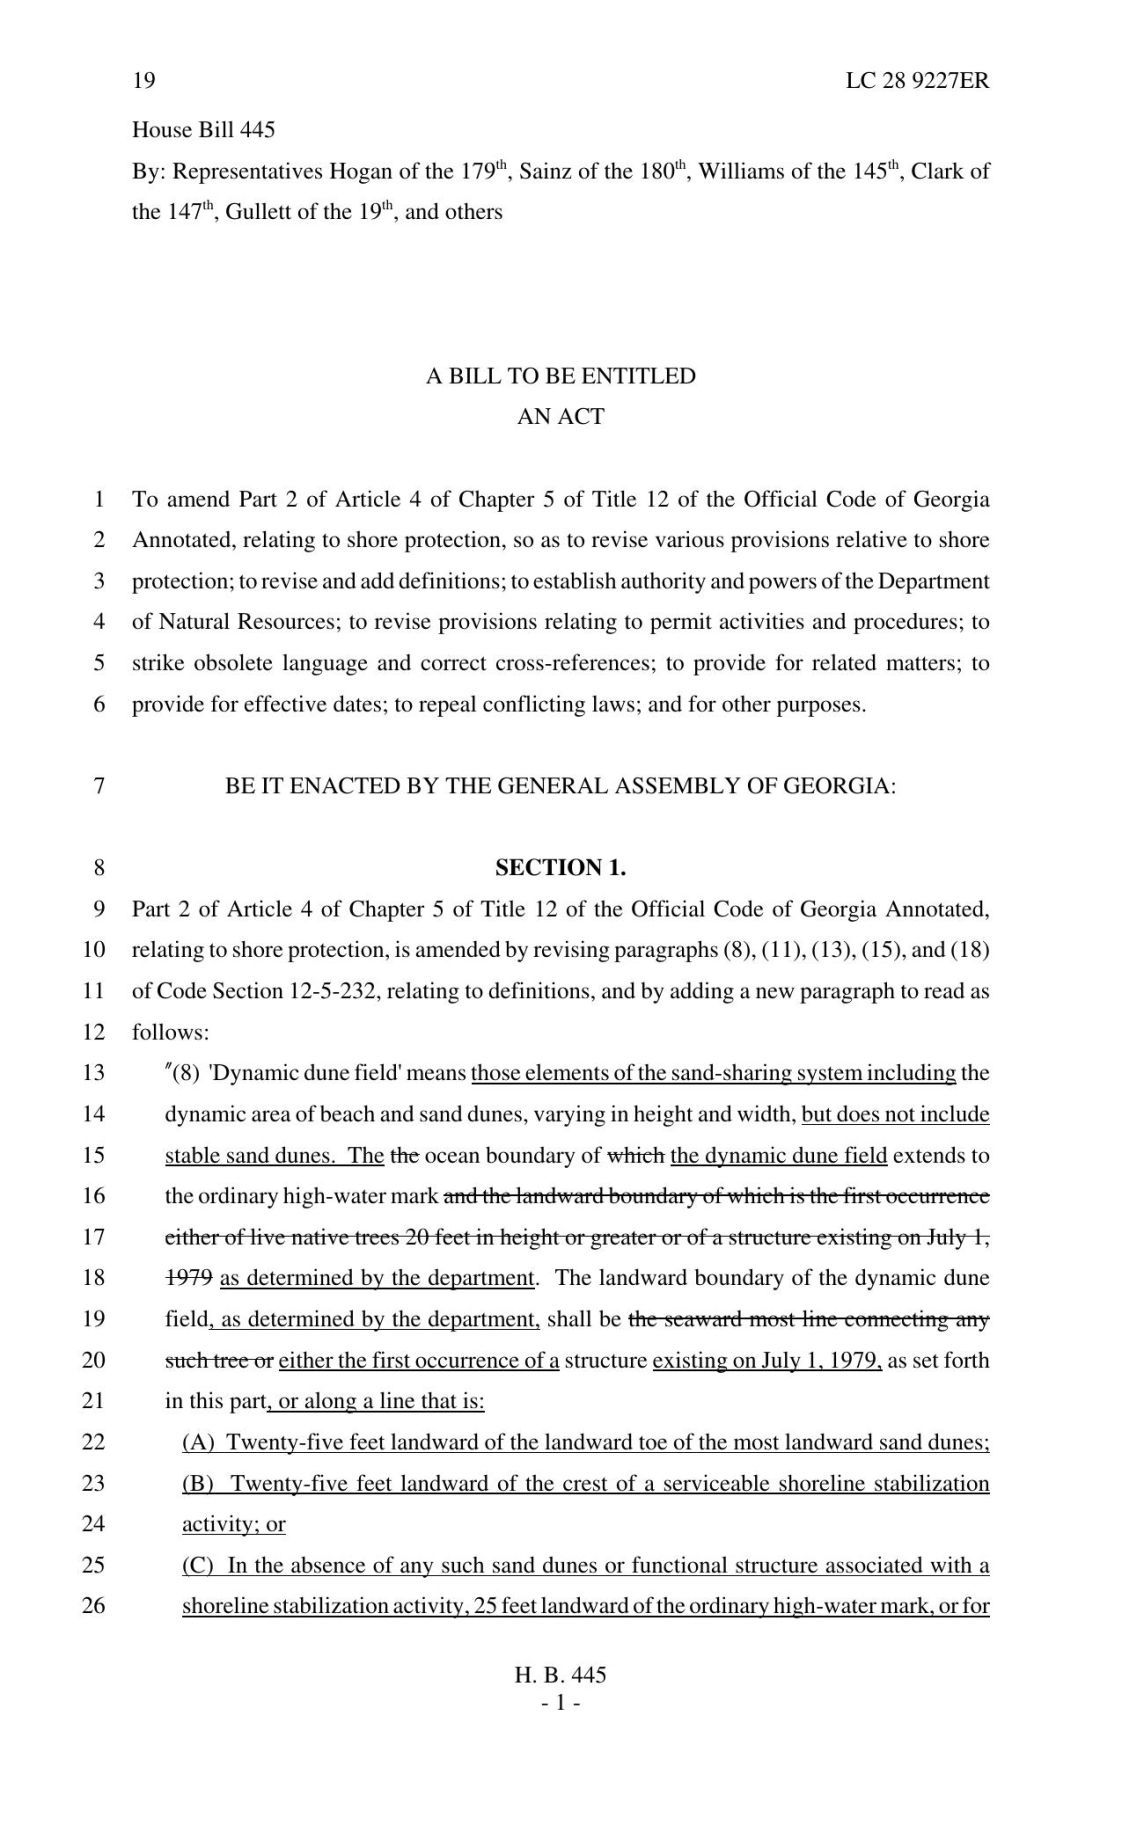 House Bill 445 (First Version)